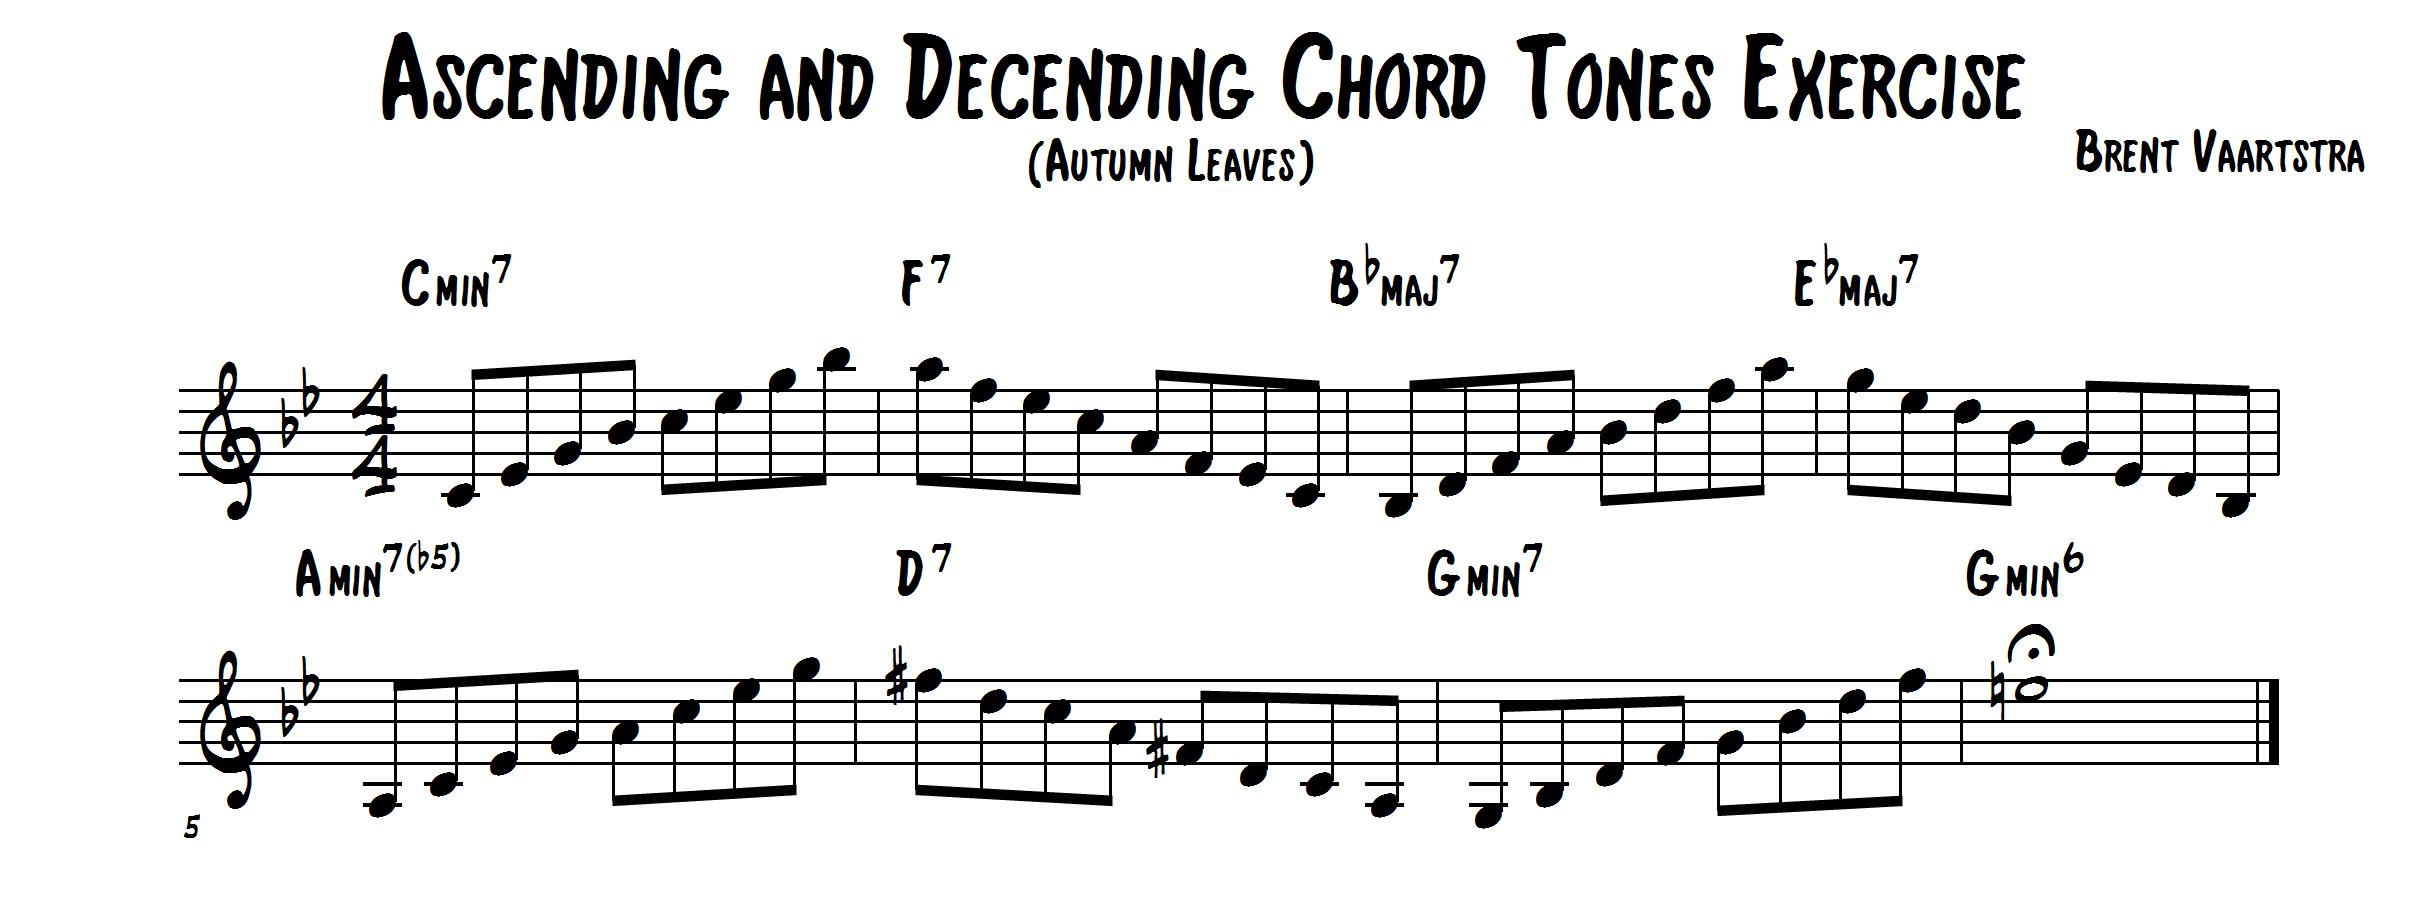 Ascending and Decending Chord Tones Exercise